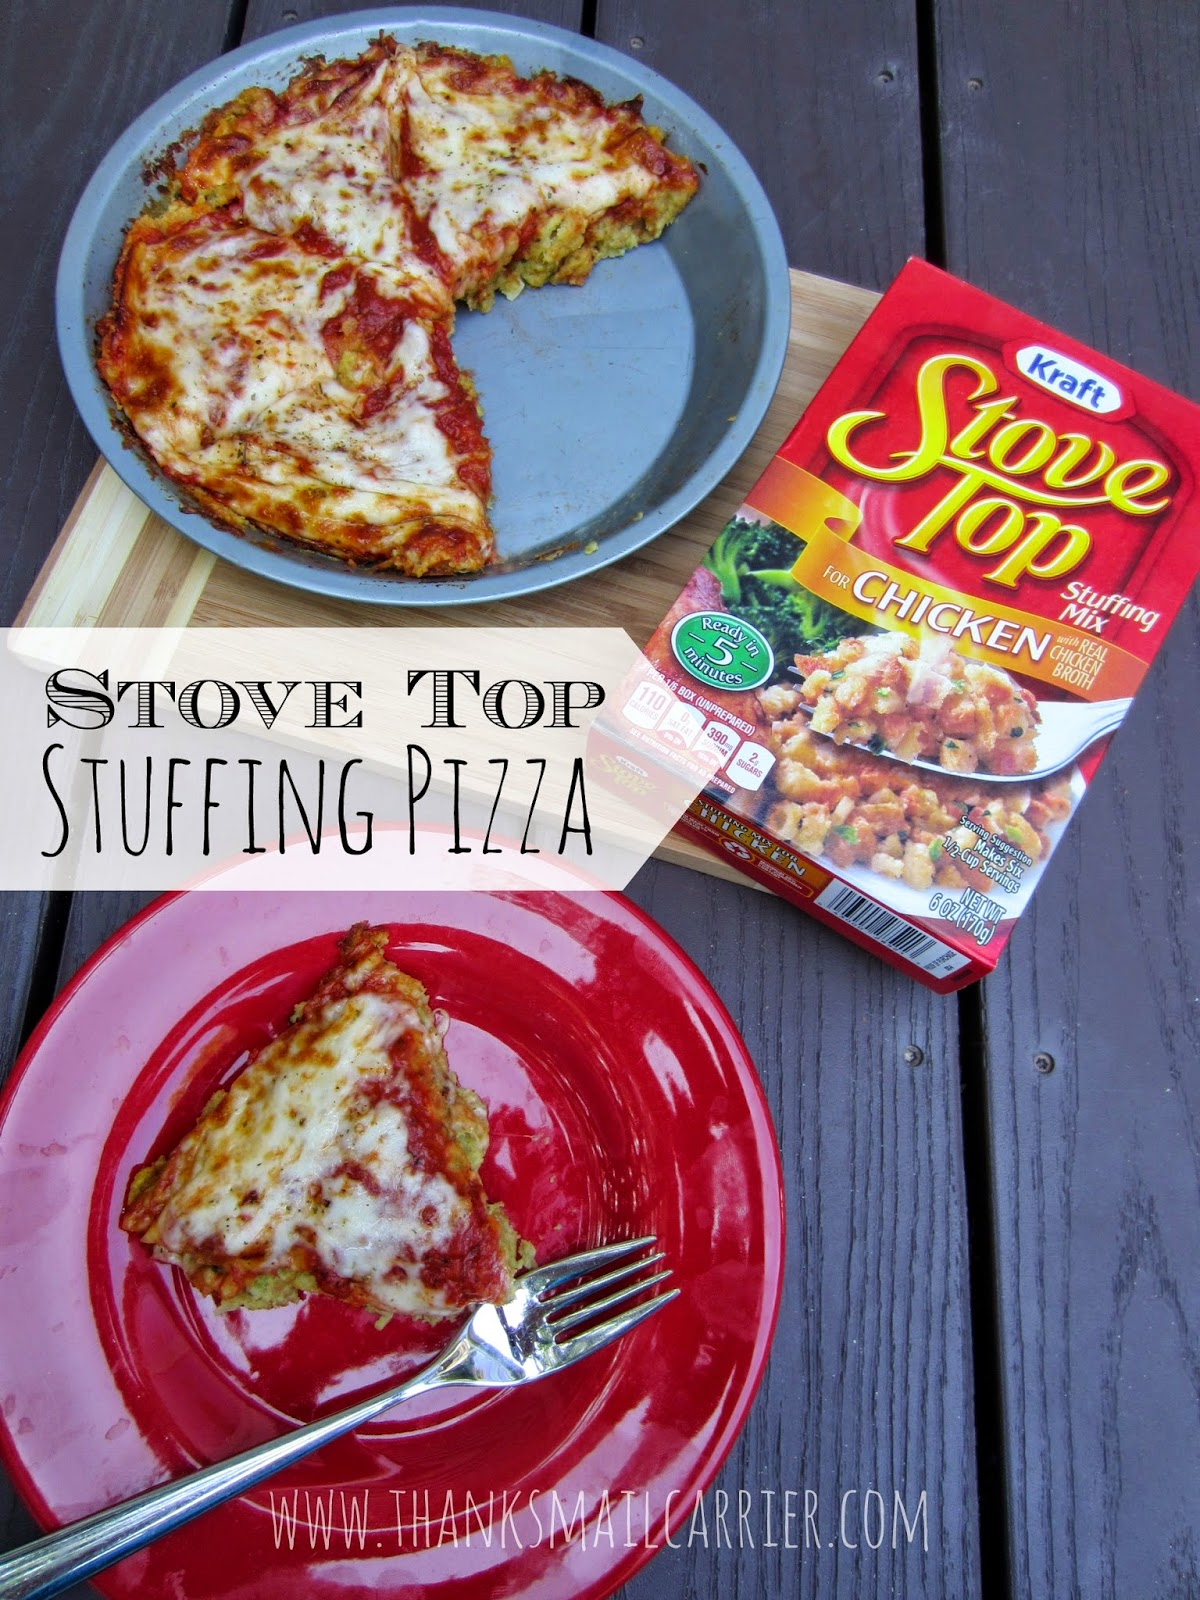 Stove Top Stuffing Pizza